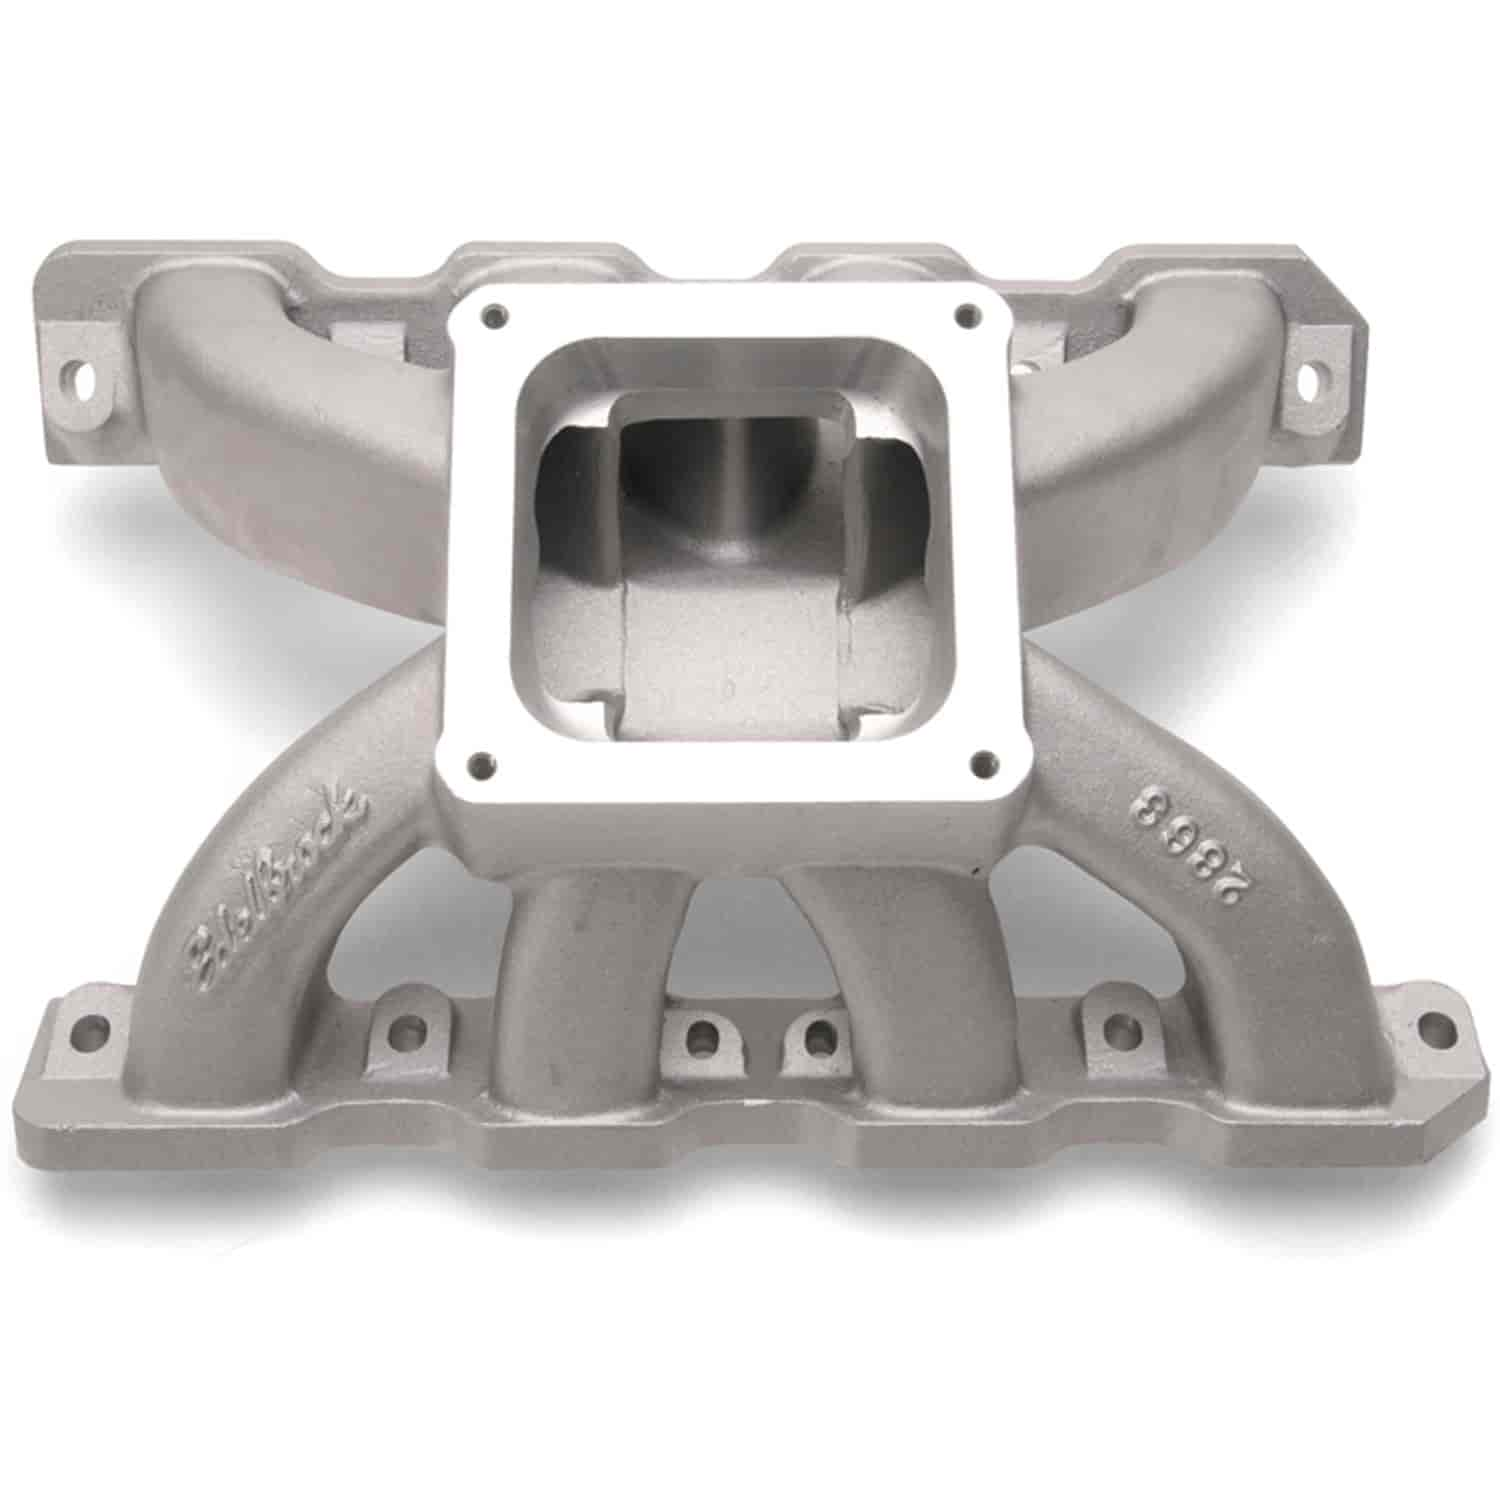 Edelbrock 2863 - Edelbrock Victor Series Intake Manifolds for Ford